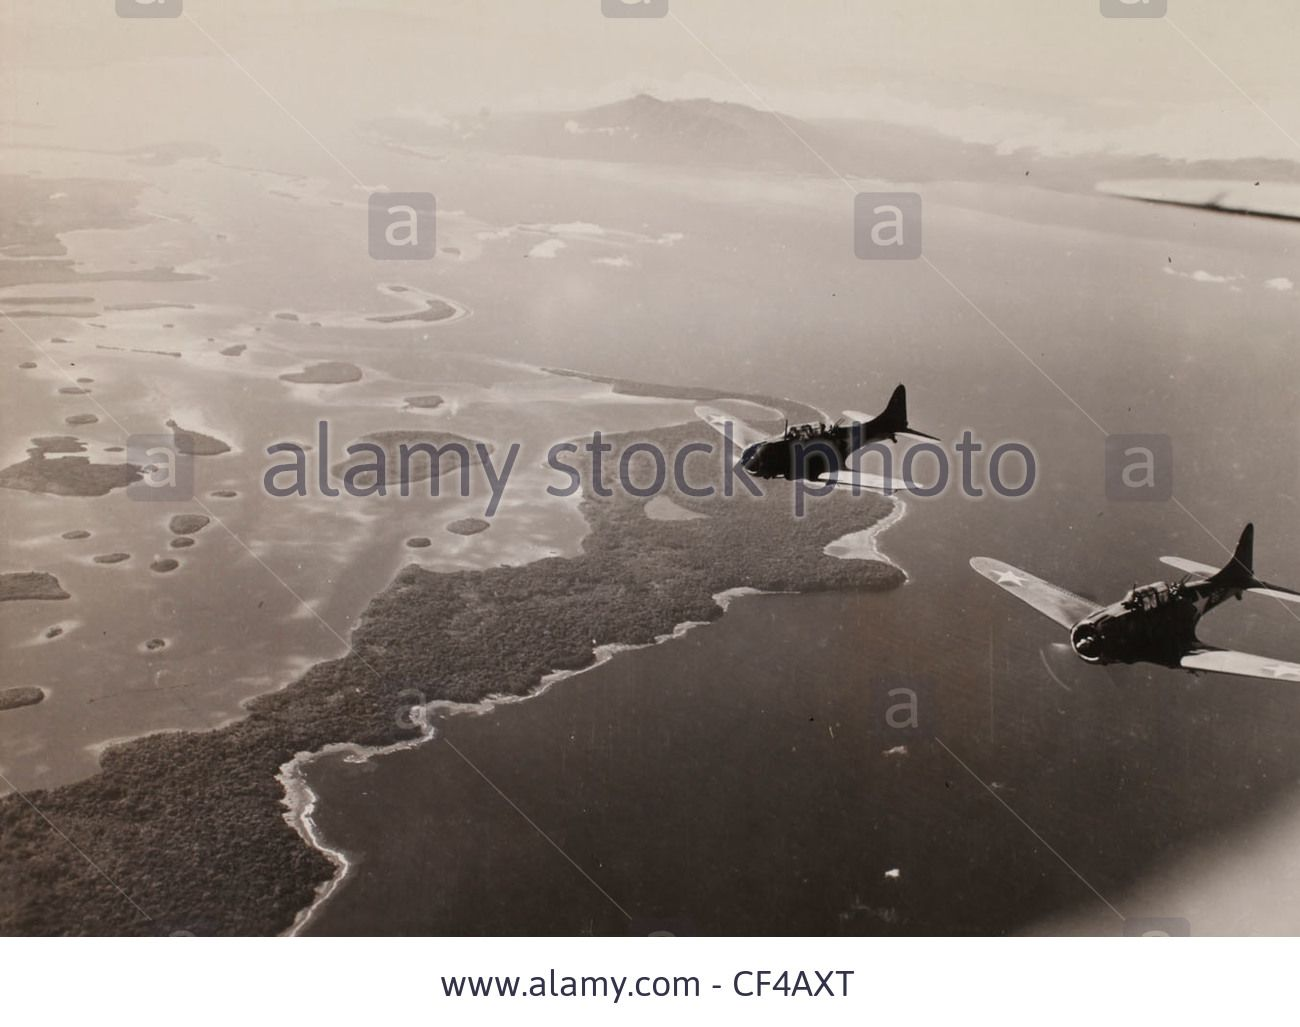 Download this stock image: A the bulldog approached the target. Dive bombing mission to Kolombangara, Guadalcana. WWII Pacific campaign Marines August 22, - CF4AXT from Alamy's library of millions of high resolution stock photos, illustrations and vectors.